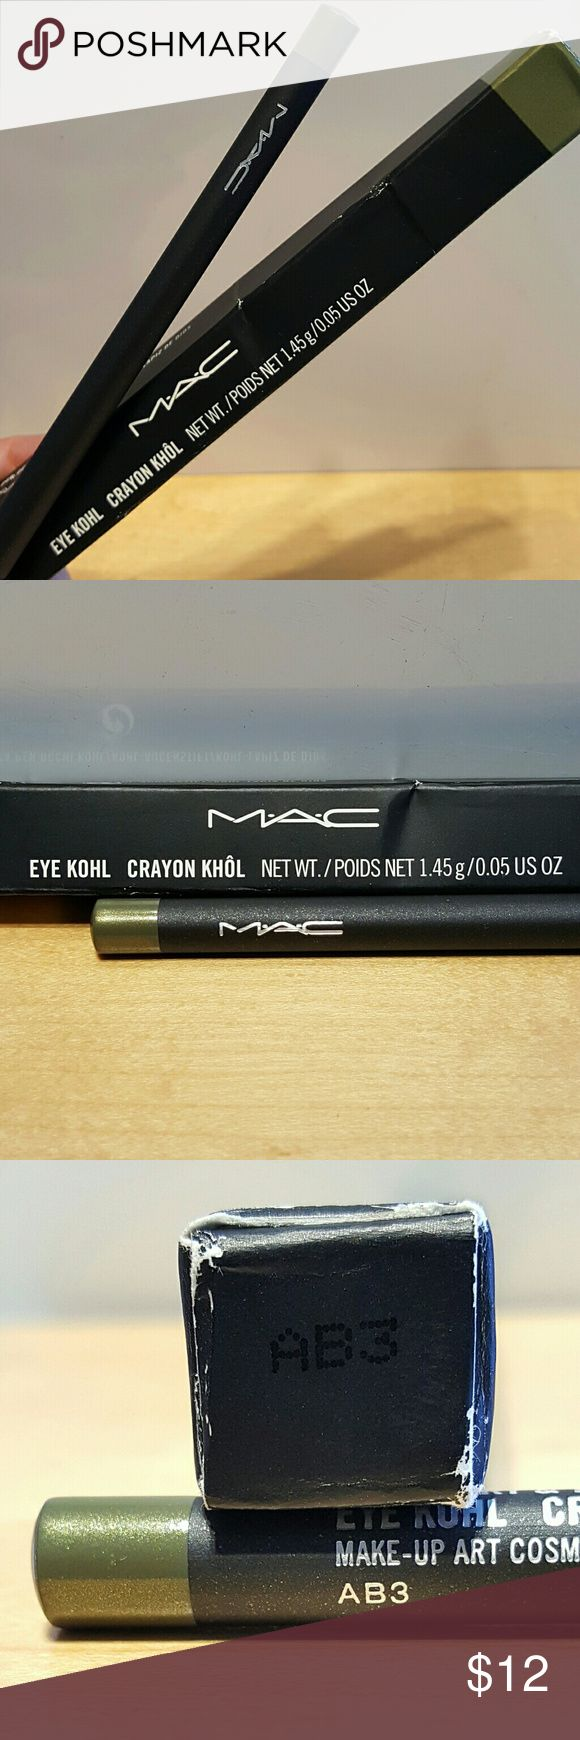 MAC Eye Khol Eyeliner RosemaryThyme Green Brand new in box MAC full size eyeliner in an amazing green! MAC Cosmetics Makeup Eyeliner